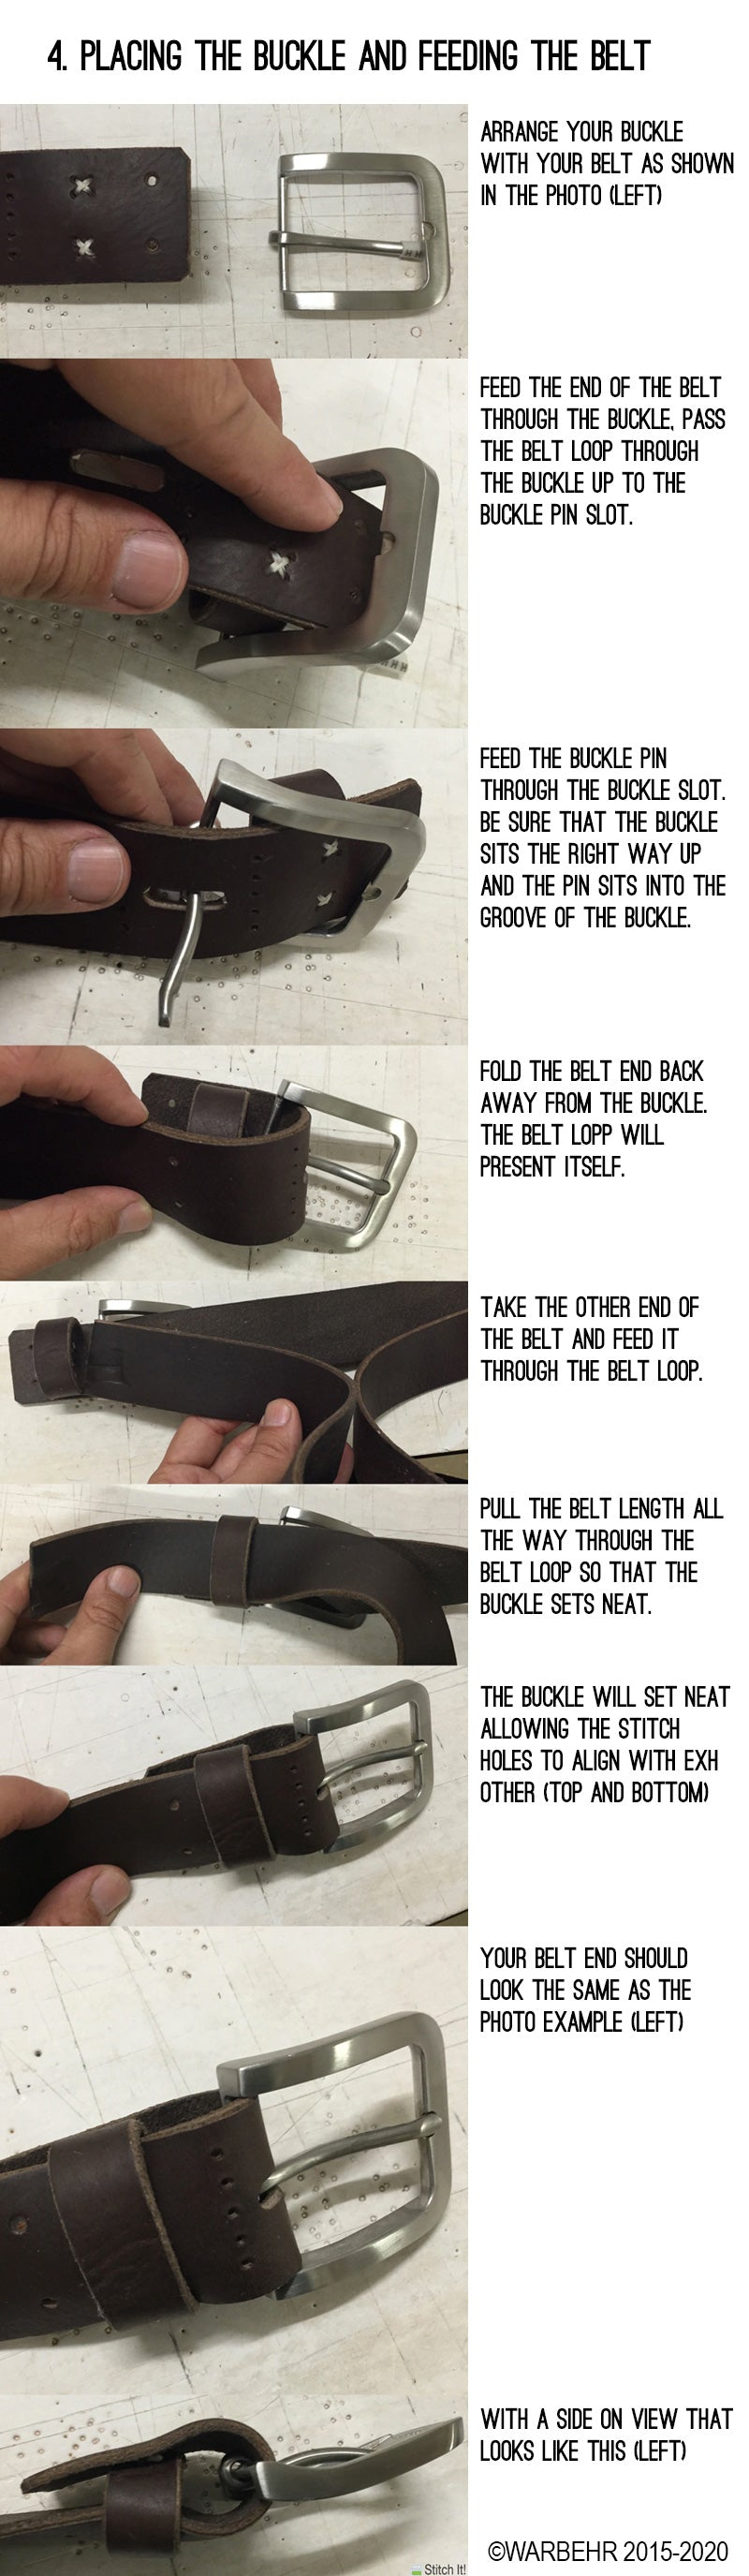 Every Mans Belt Instructions - Placing the buckle and feeding the belt. WarBehr